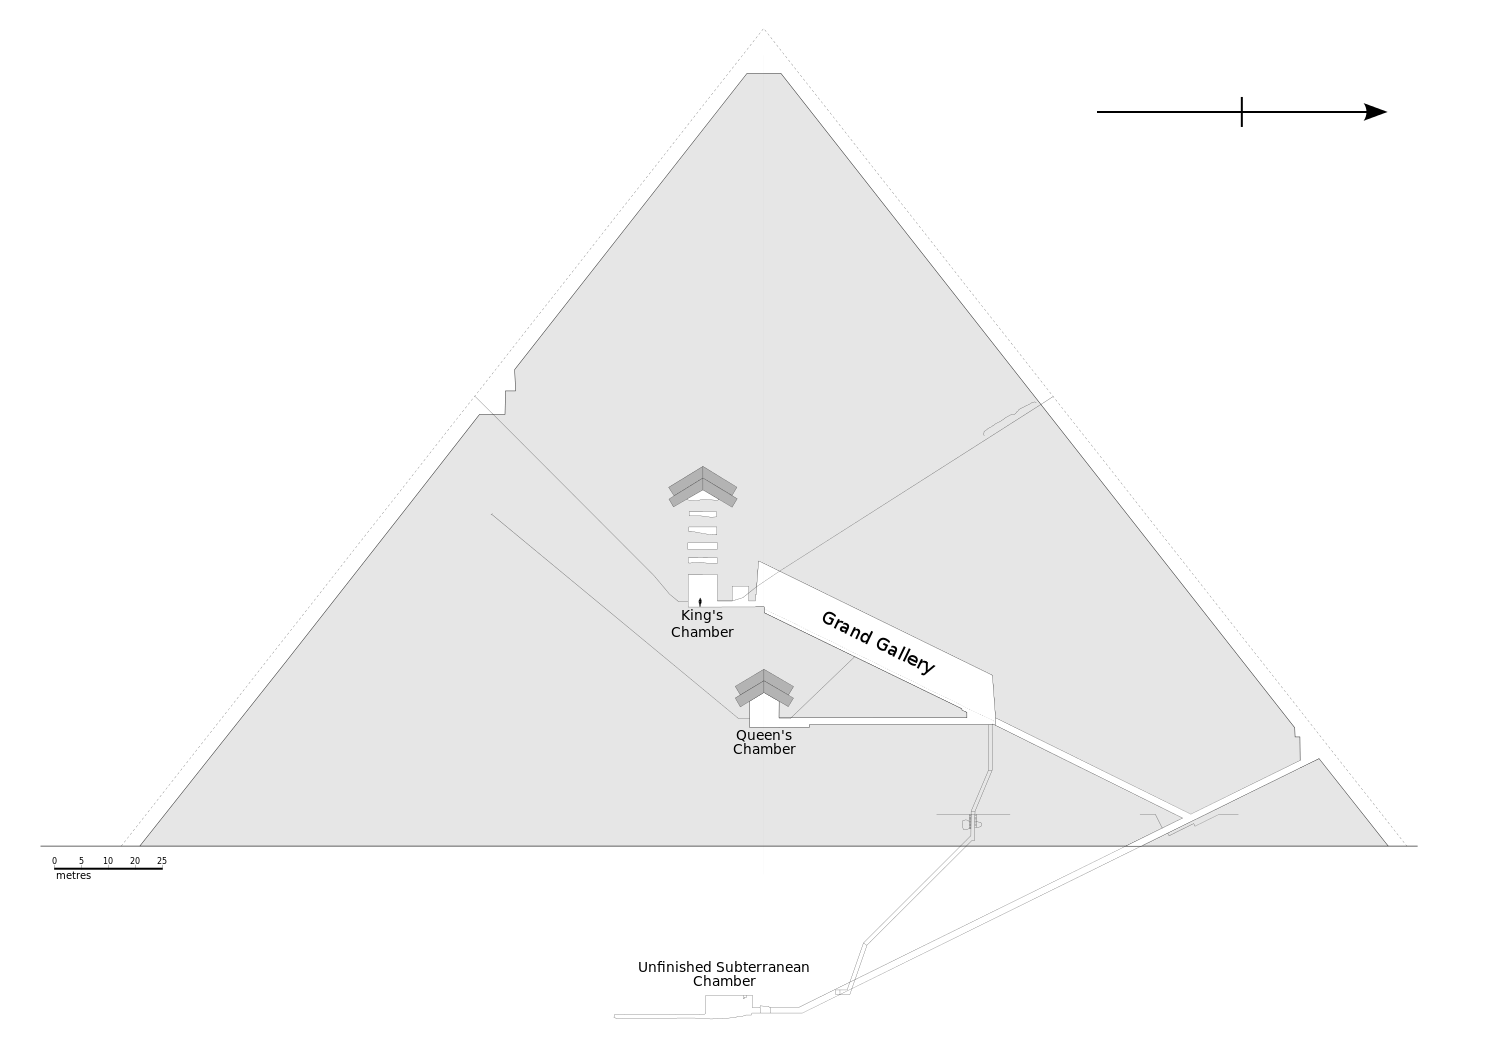 Internal structure of the pyramid of Khufu (Cheops)